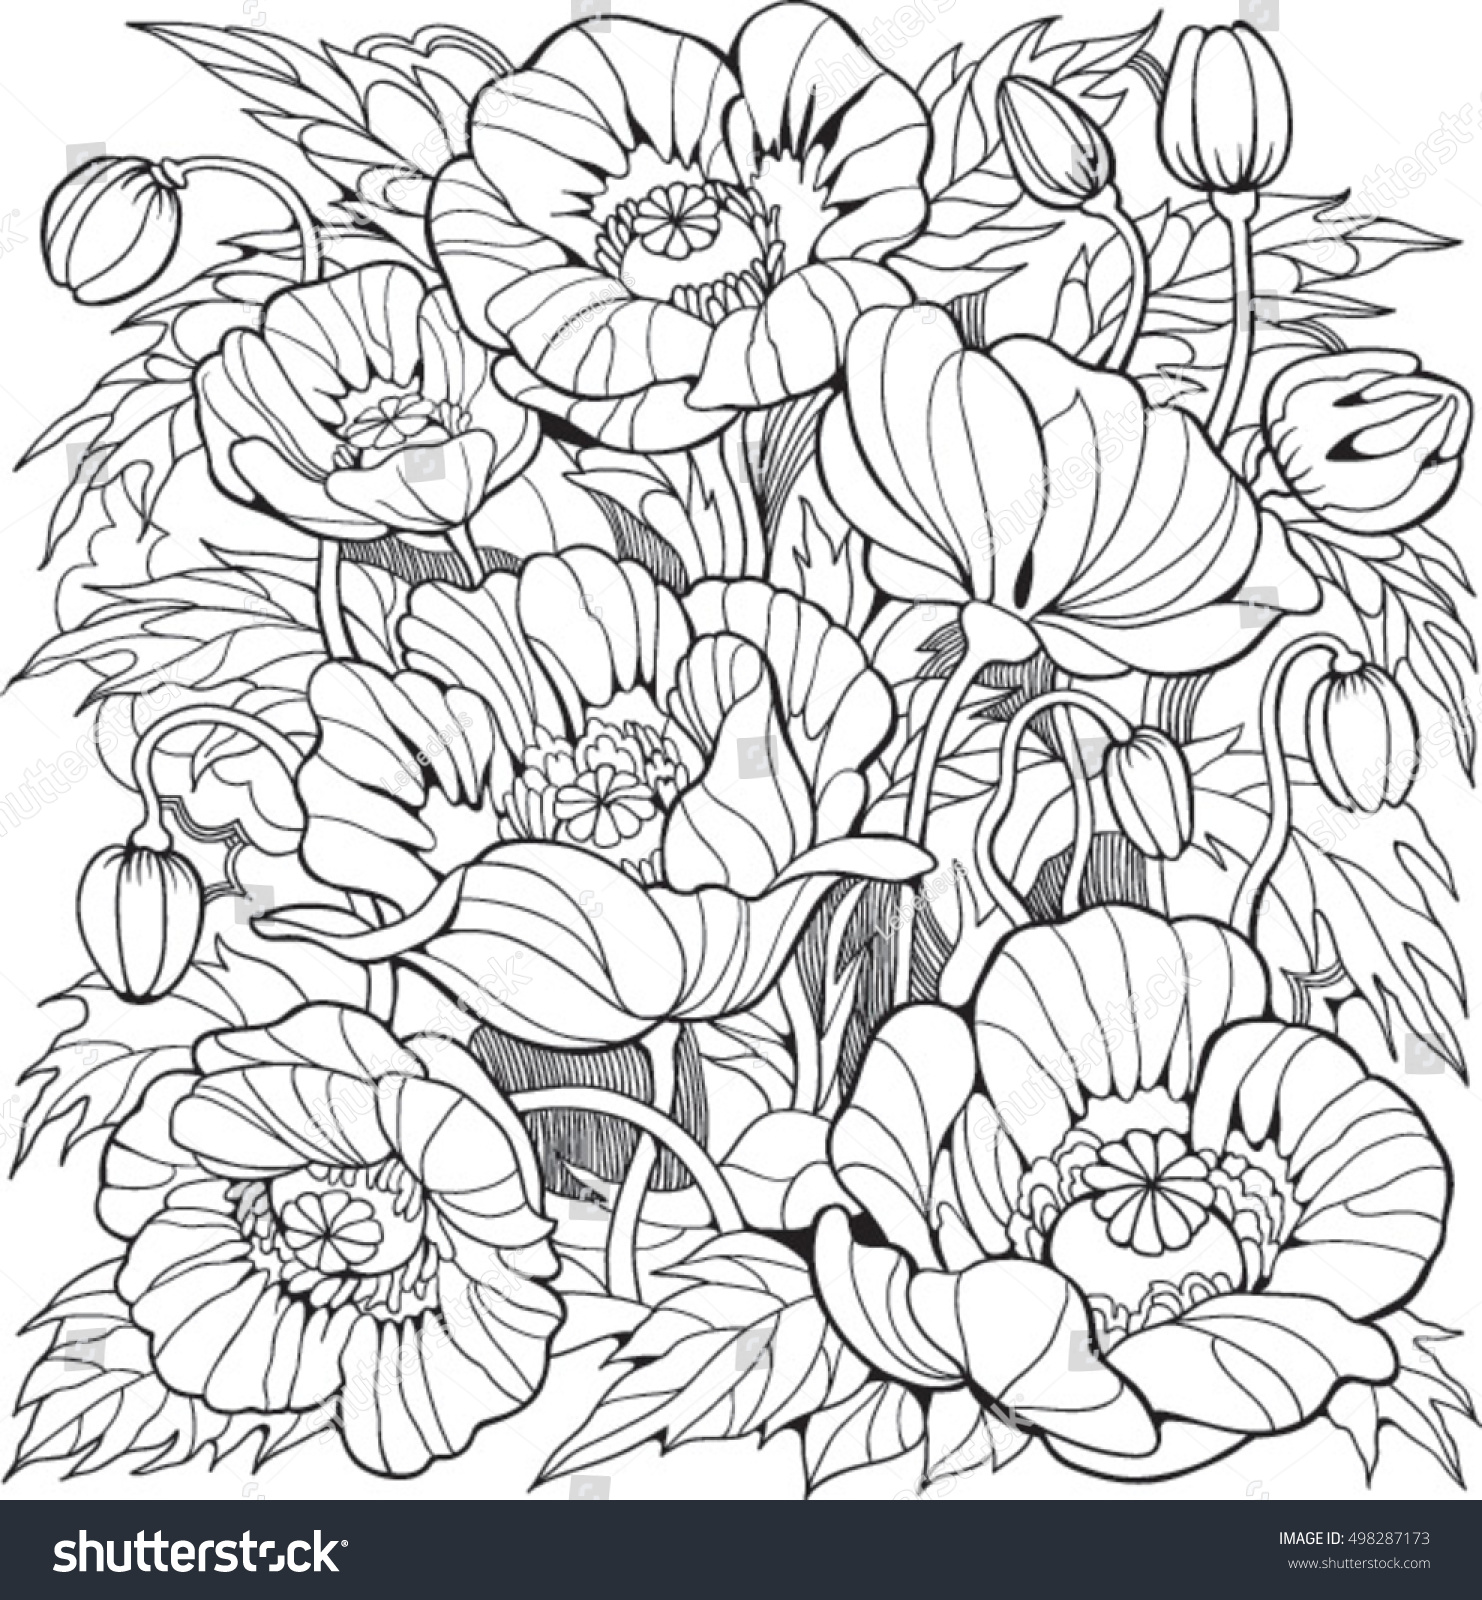 poppy flowers coloring page older stock vector 498287173